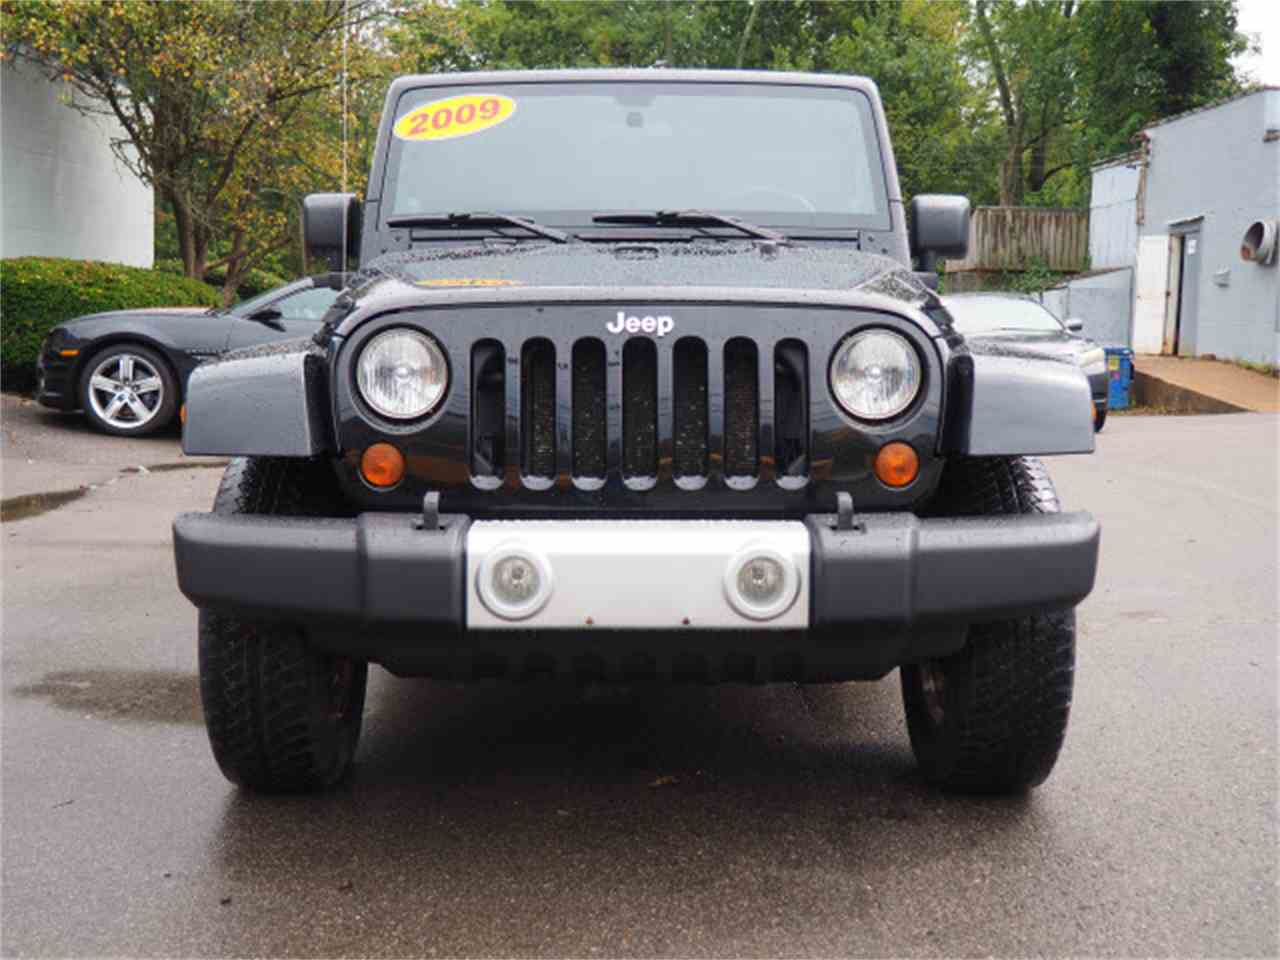 Large Picture of 2009 Jeep Wrangler - $17,000.00 - LWMR